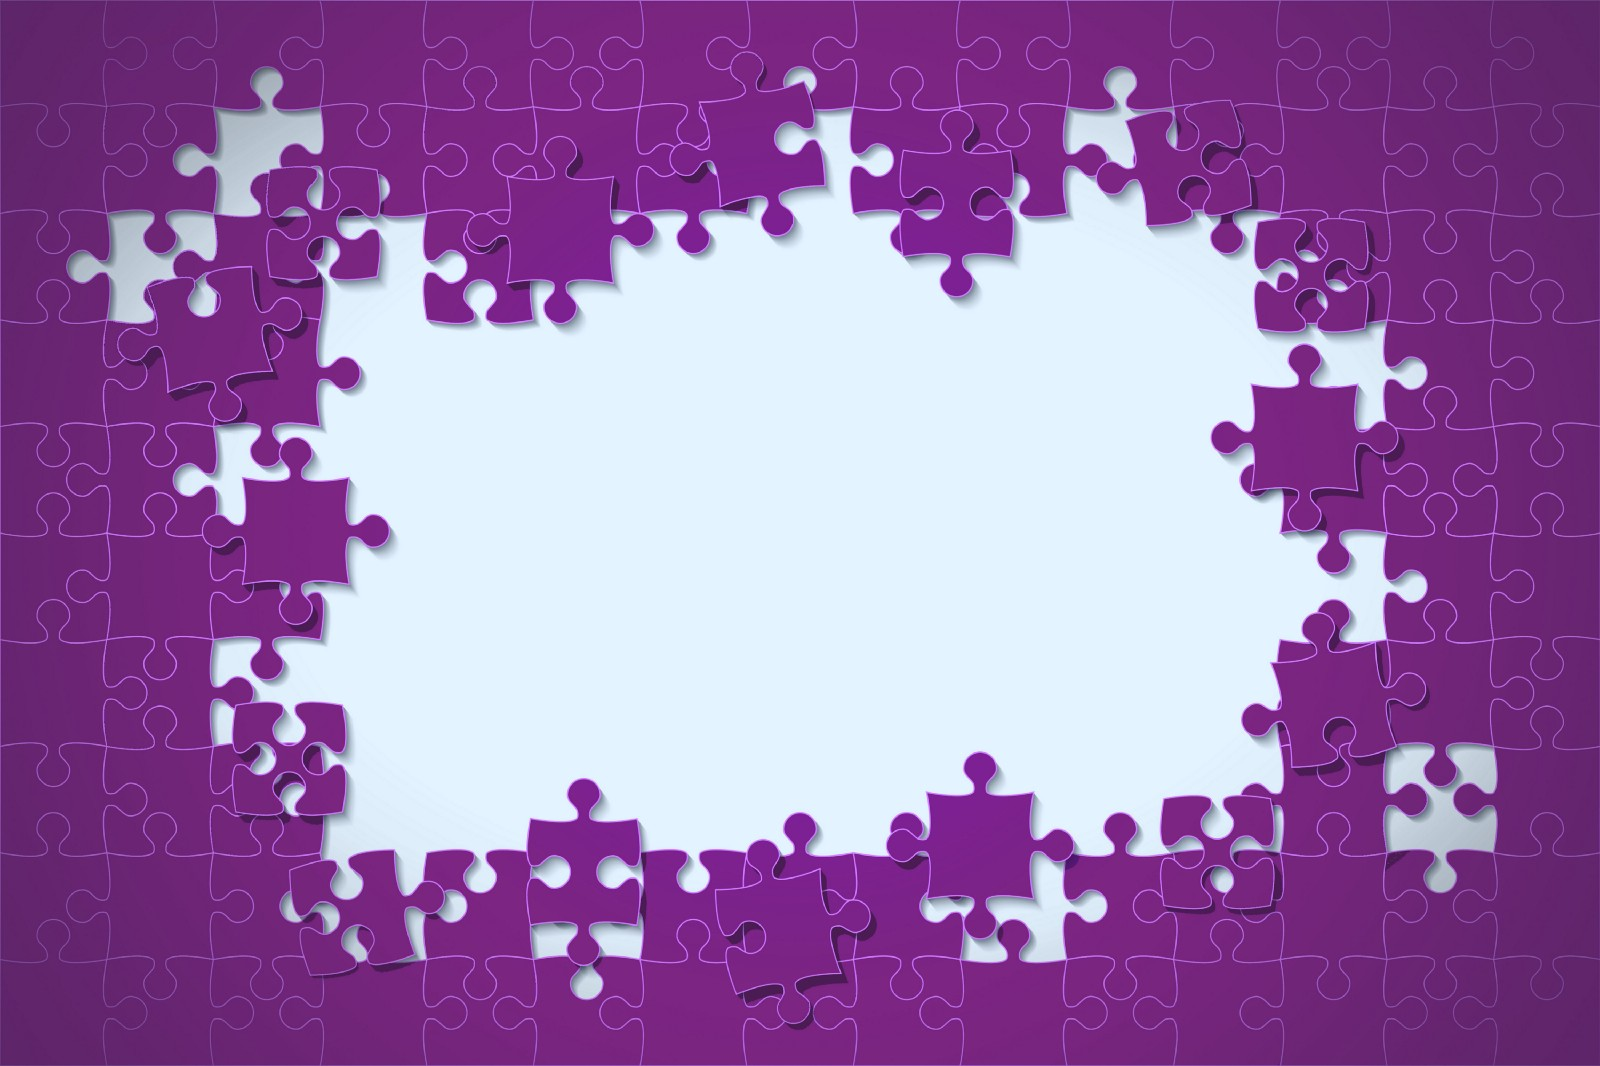 Jobs To Be Done Interviews Solve The Puzzle Of Understanding Customer Needs